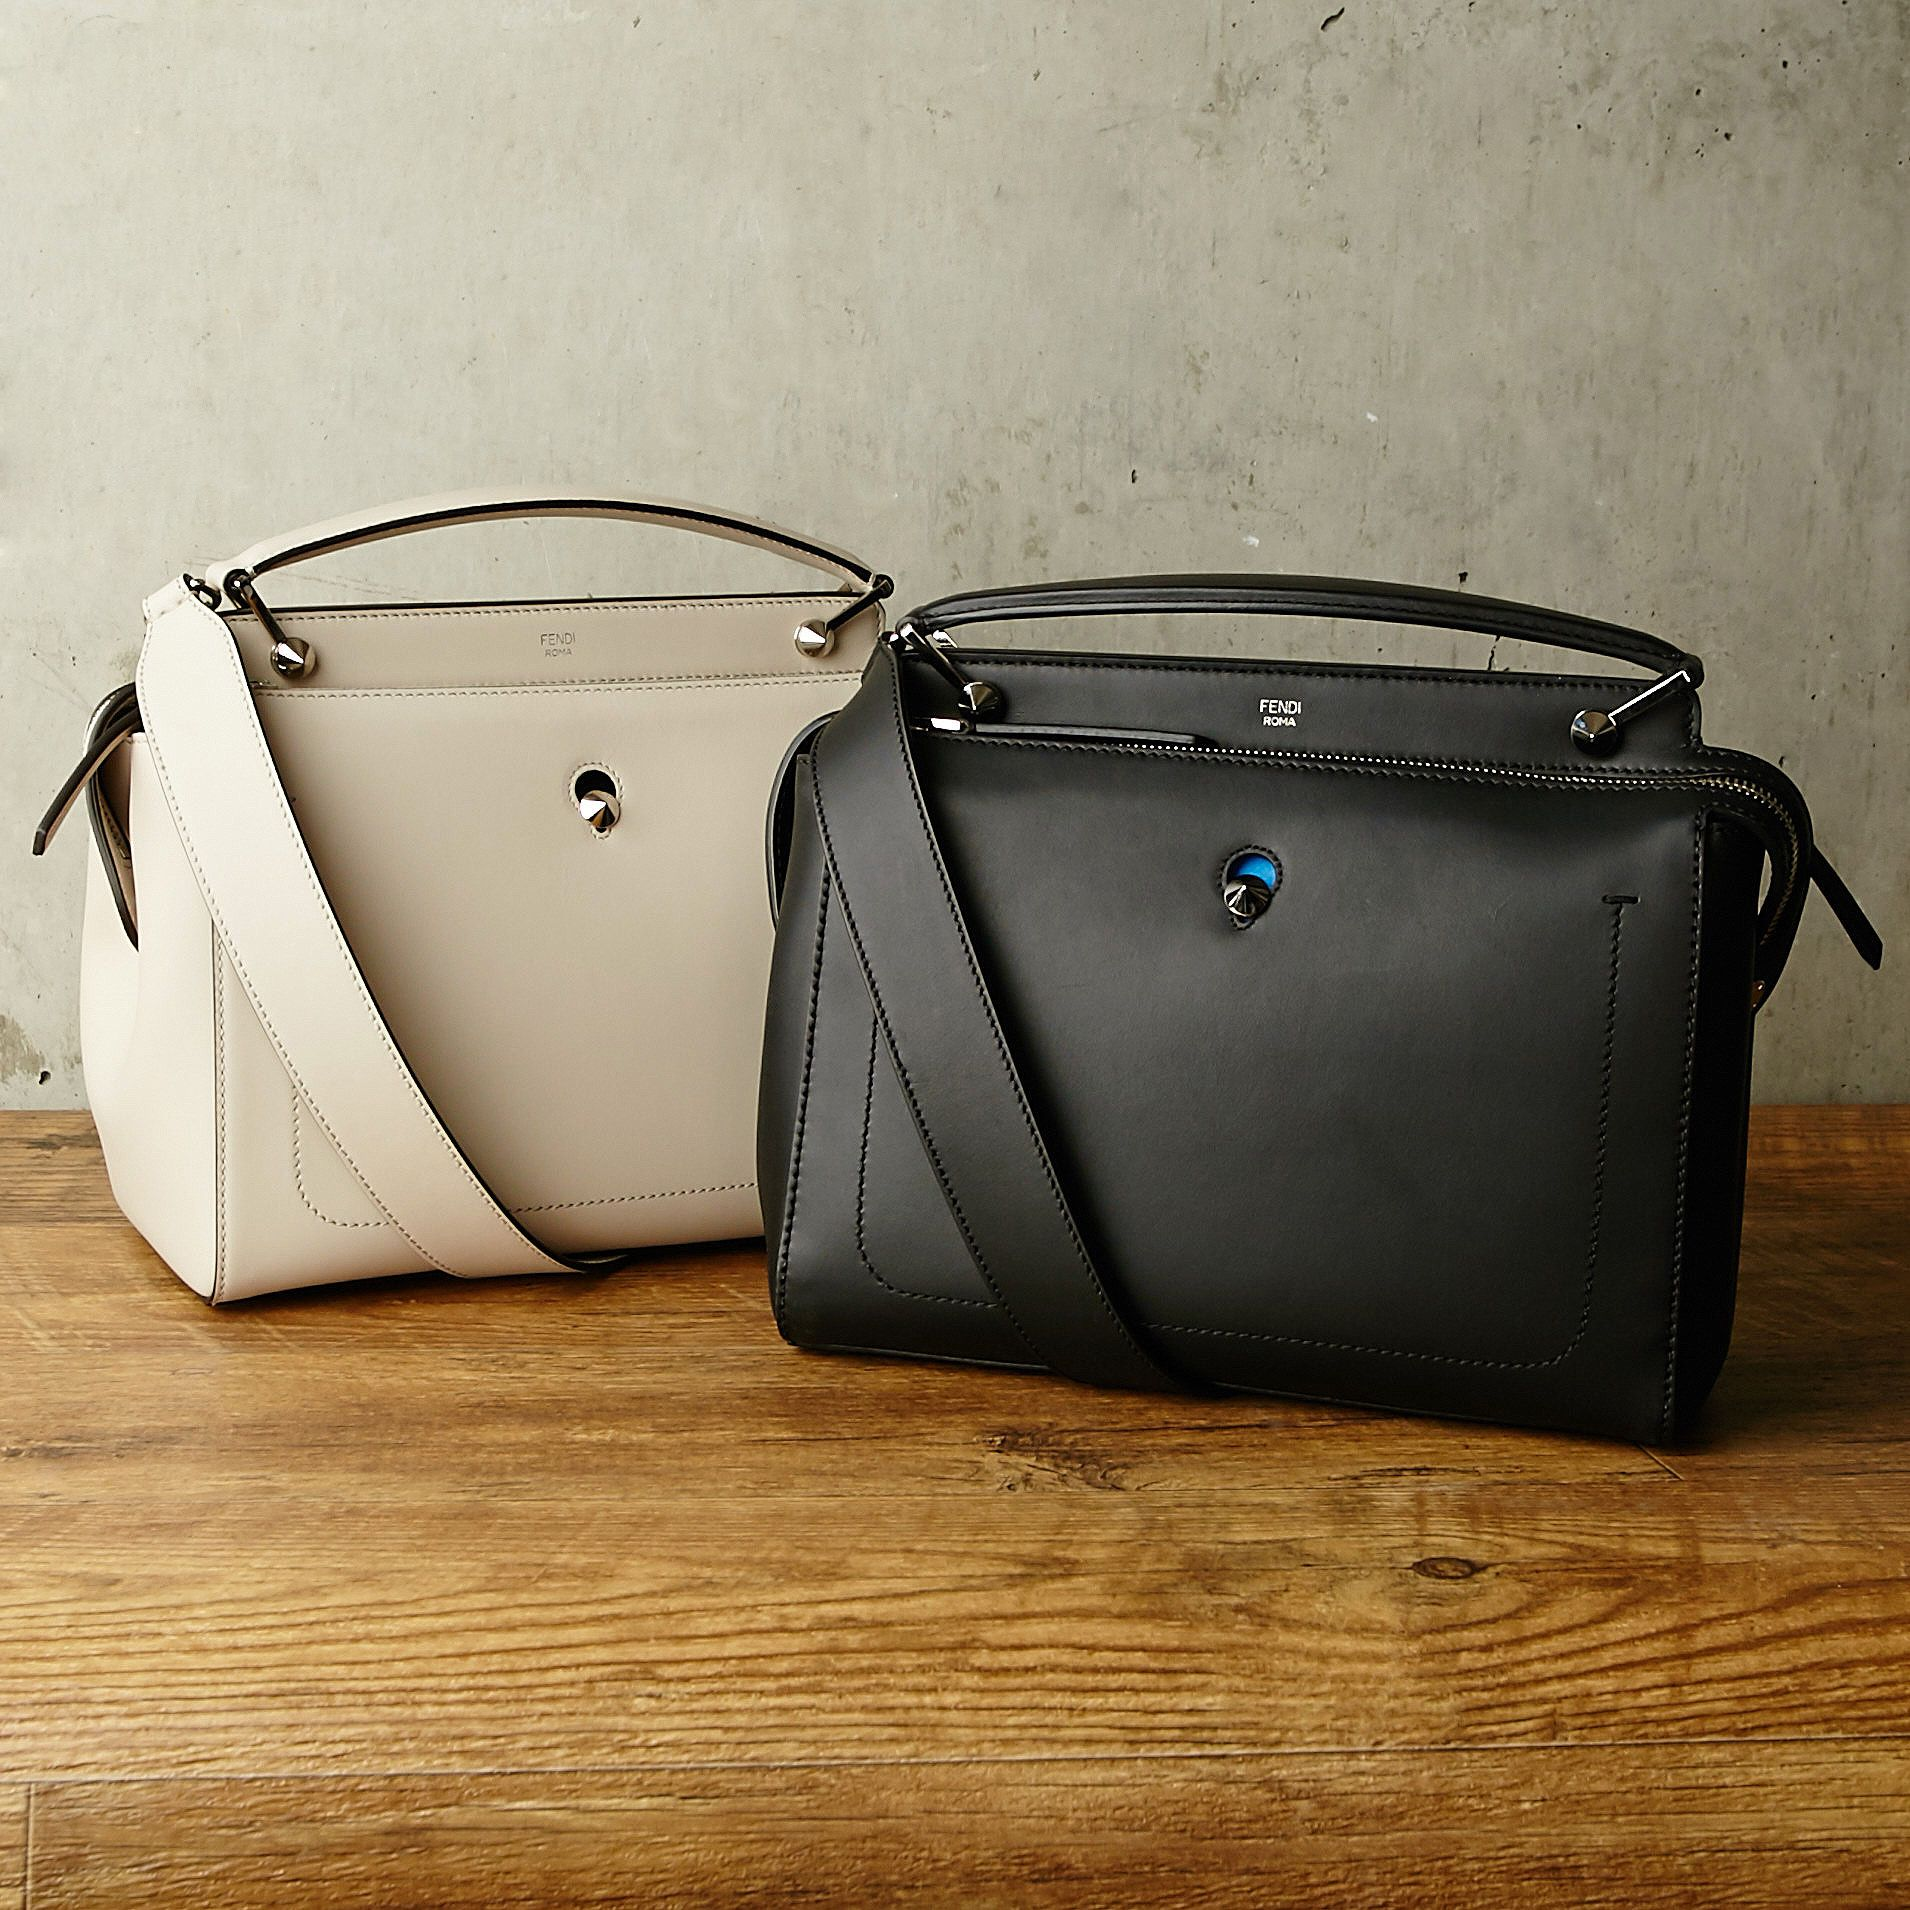 78 images about handbags lve on pinterest fendi bags runway 2015 and shoulder bags